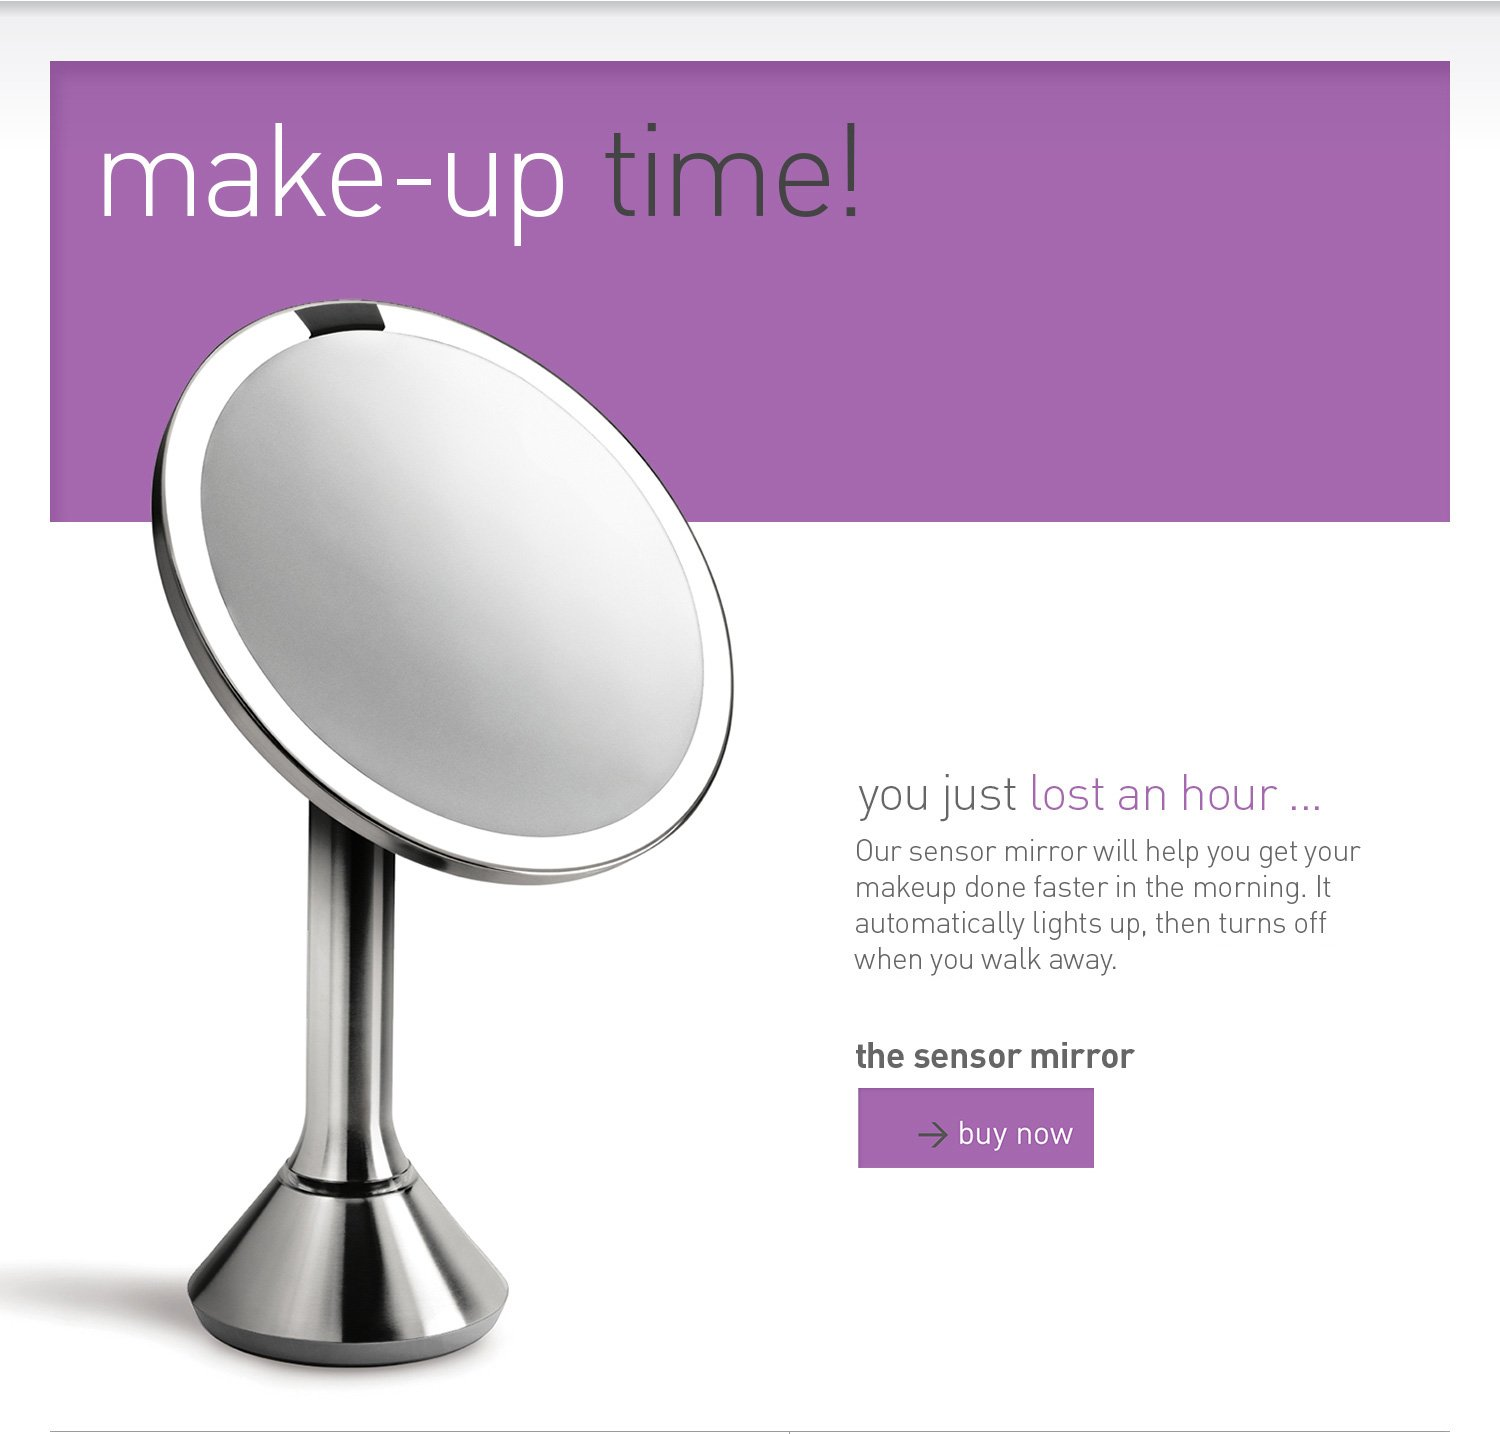 make-up time: sensor mirror